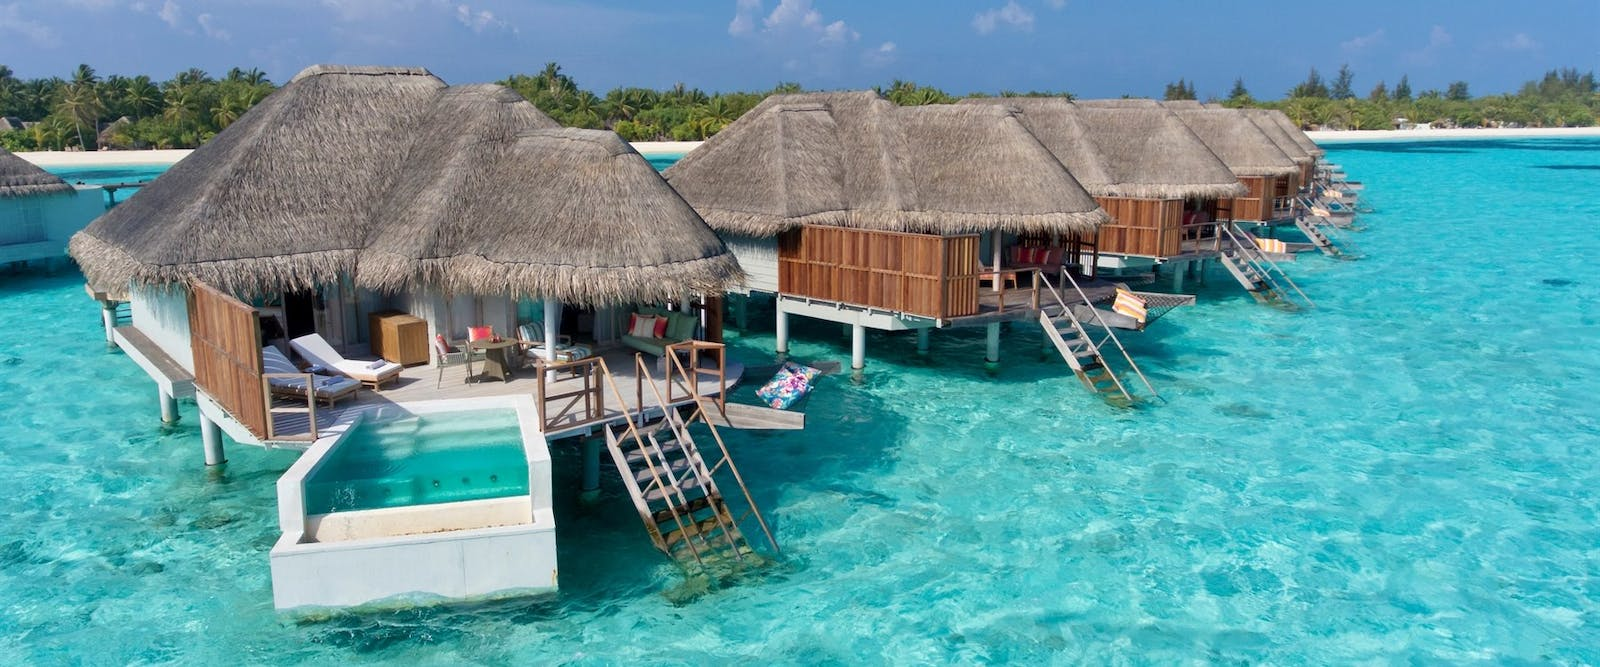 Water Villas at Kanuhura, Maldives, Indian Ocean